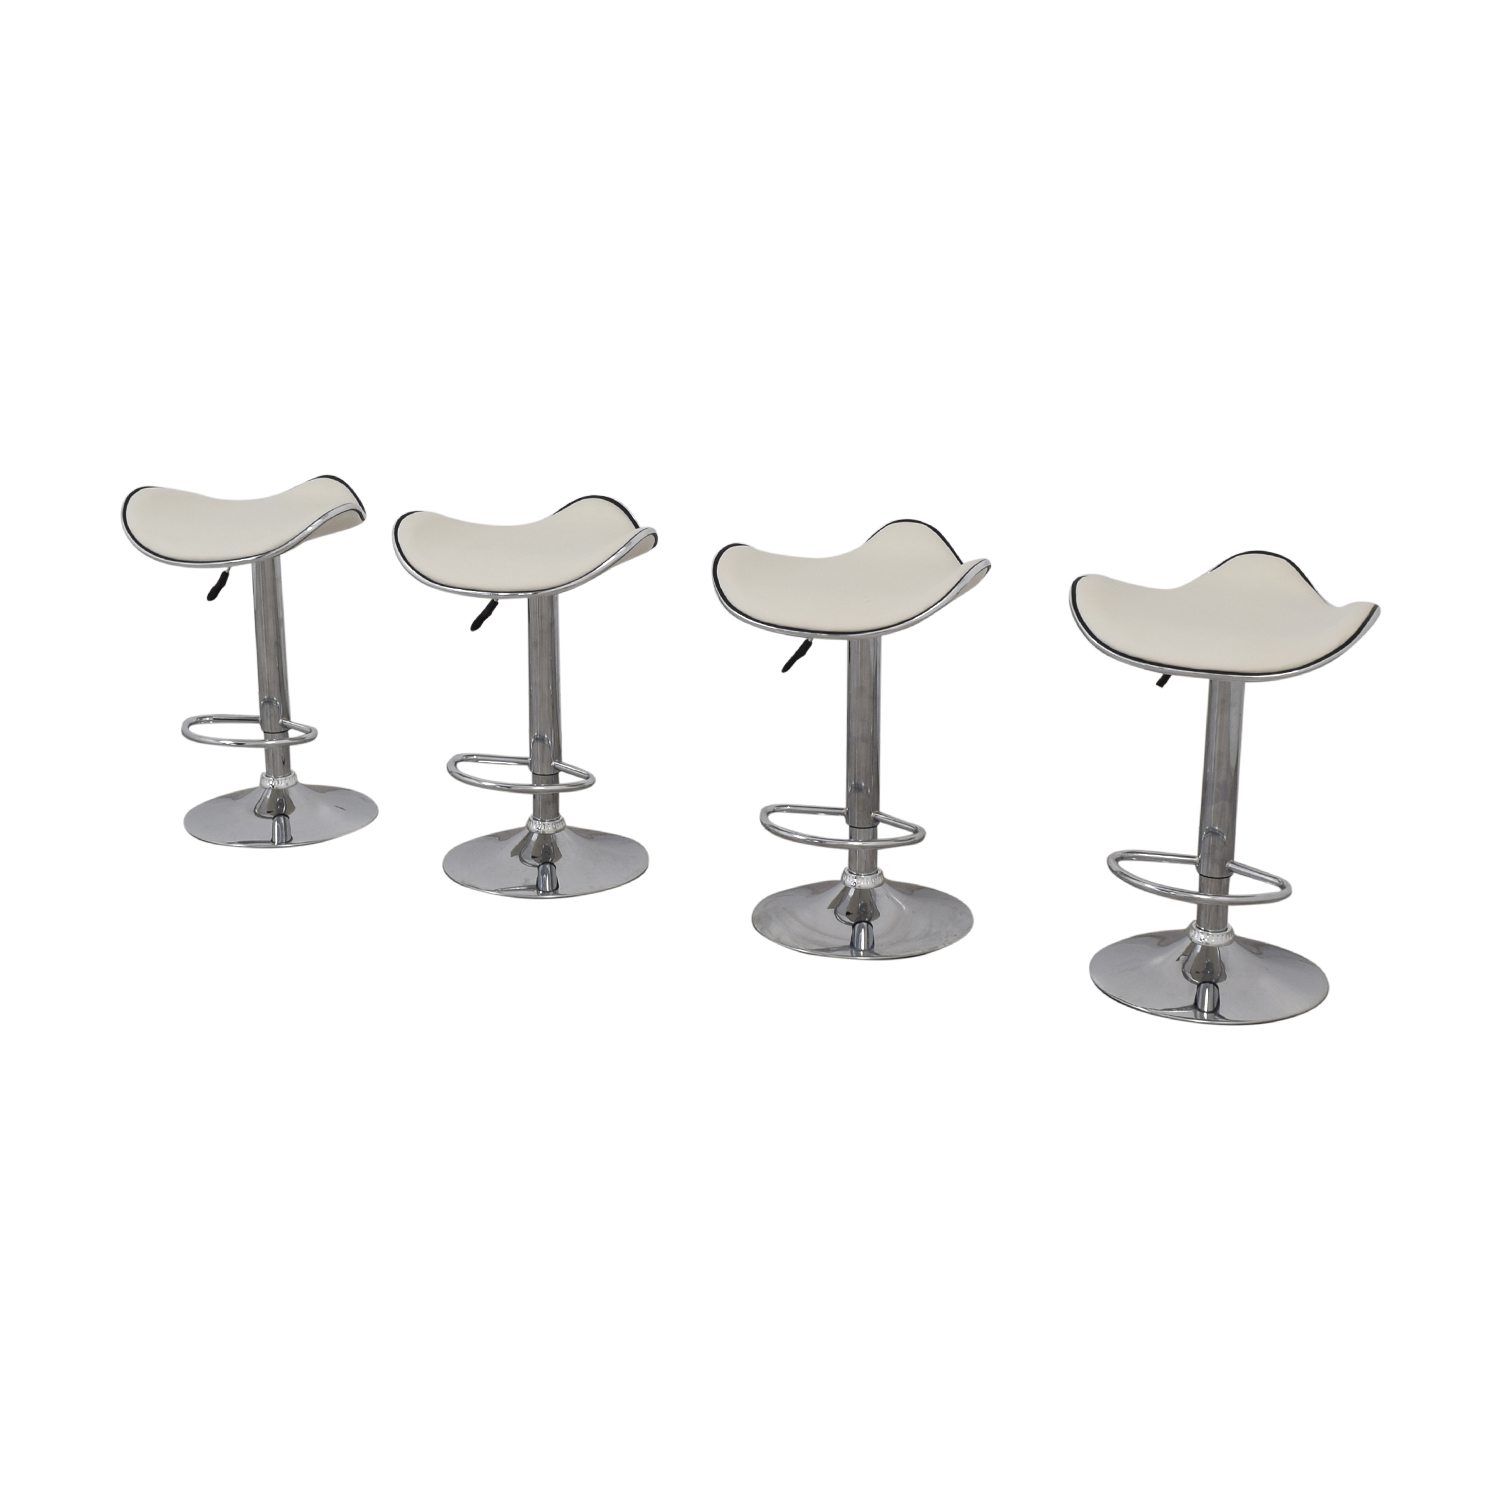 Houzz Houzz Adjustable Bar Stools second hand